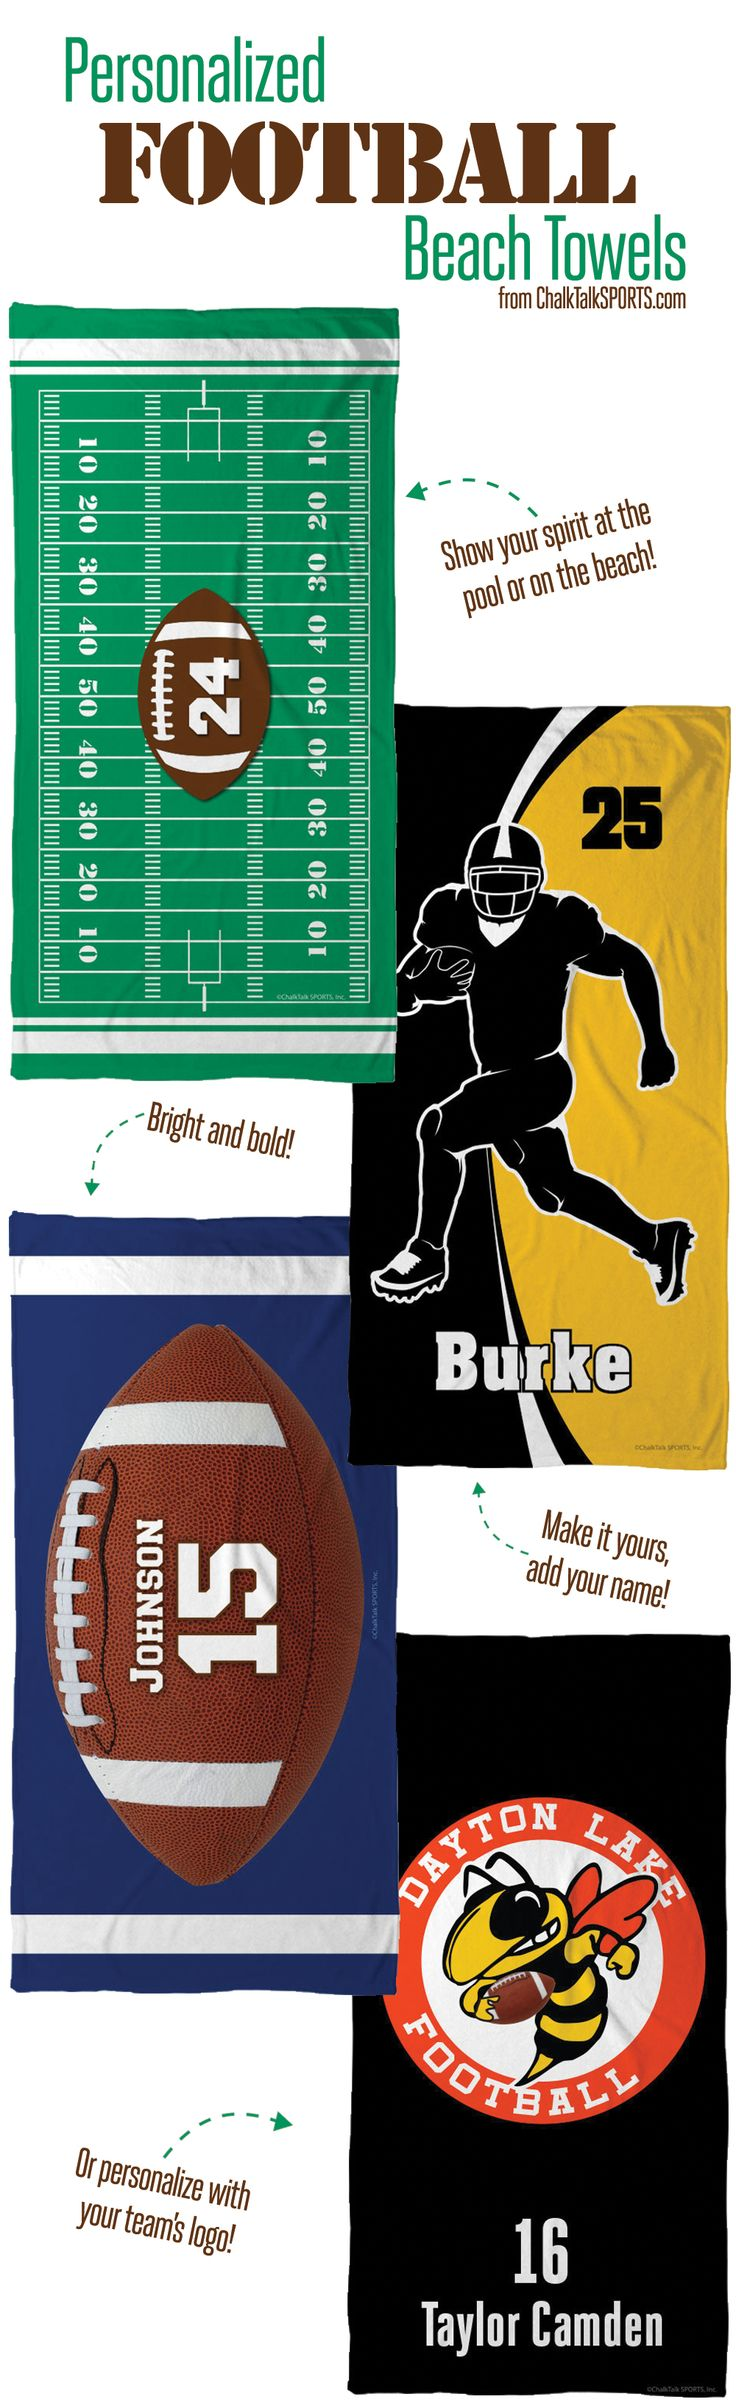 Rep your team at the beach or pool! Personalized football beach towels from ChalkTalkSPORTS.com!